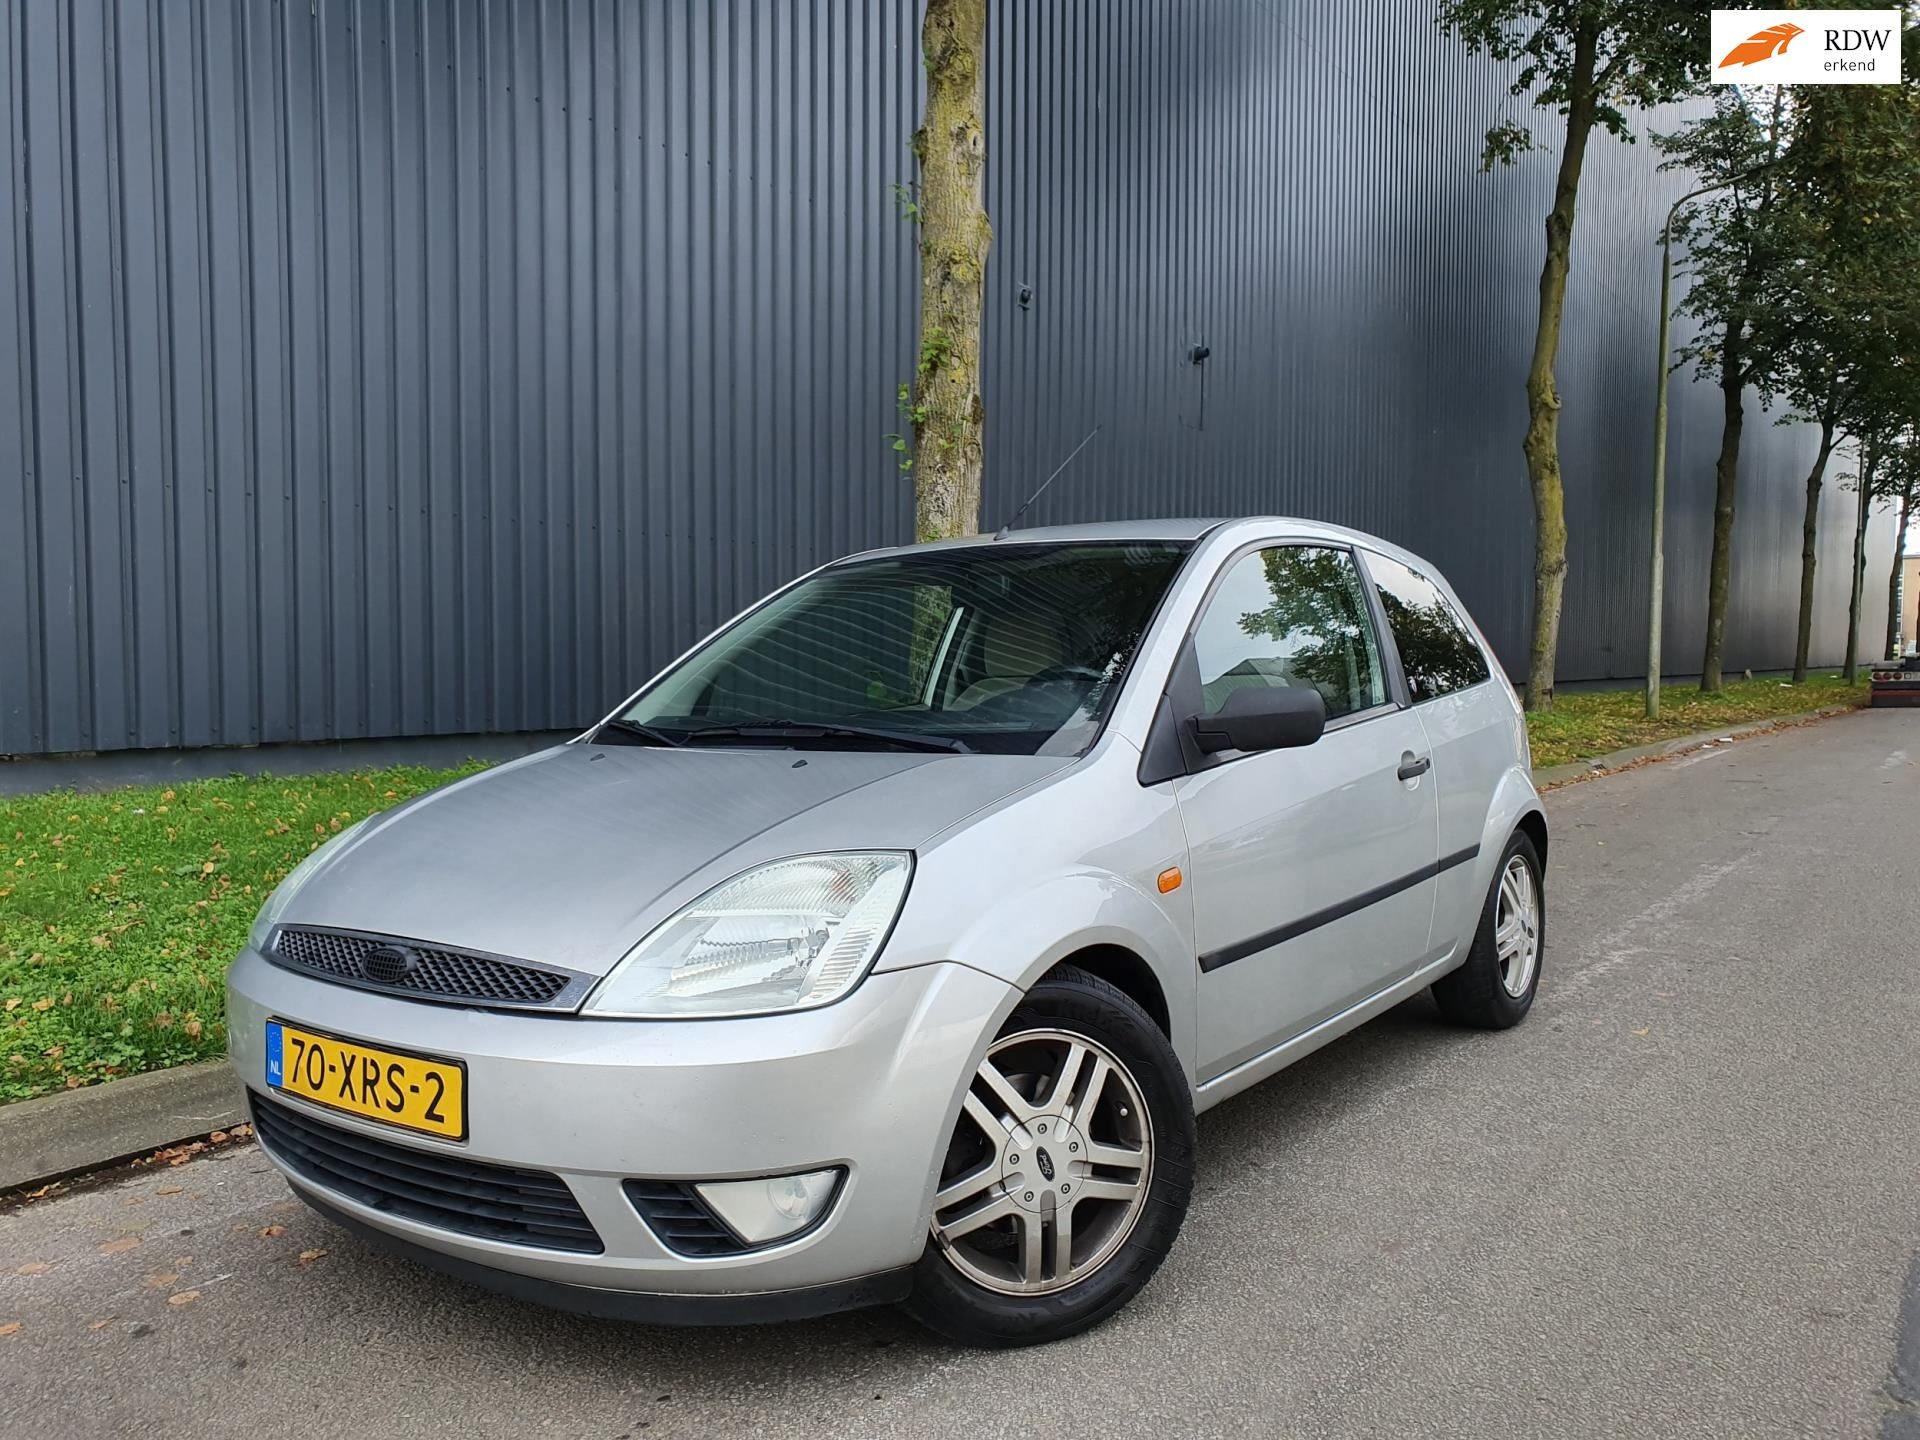 Ford Fiesta occasion - Autohandel Direct